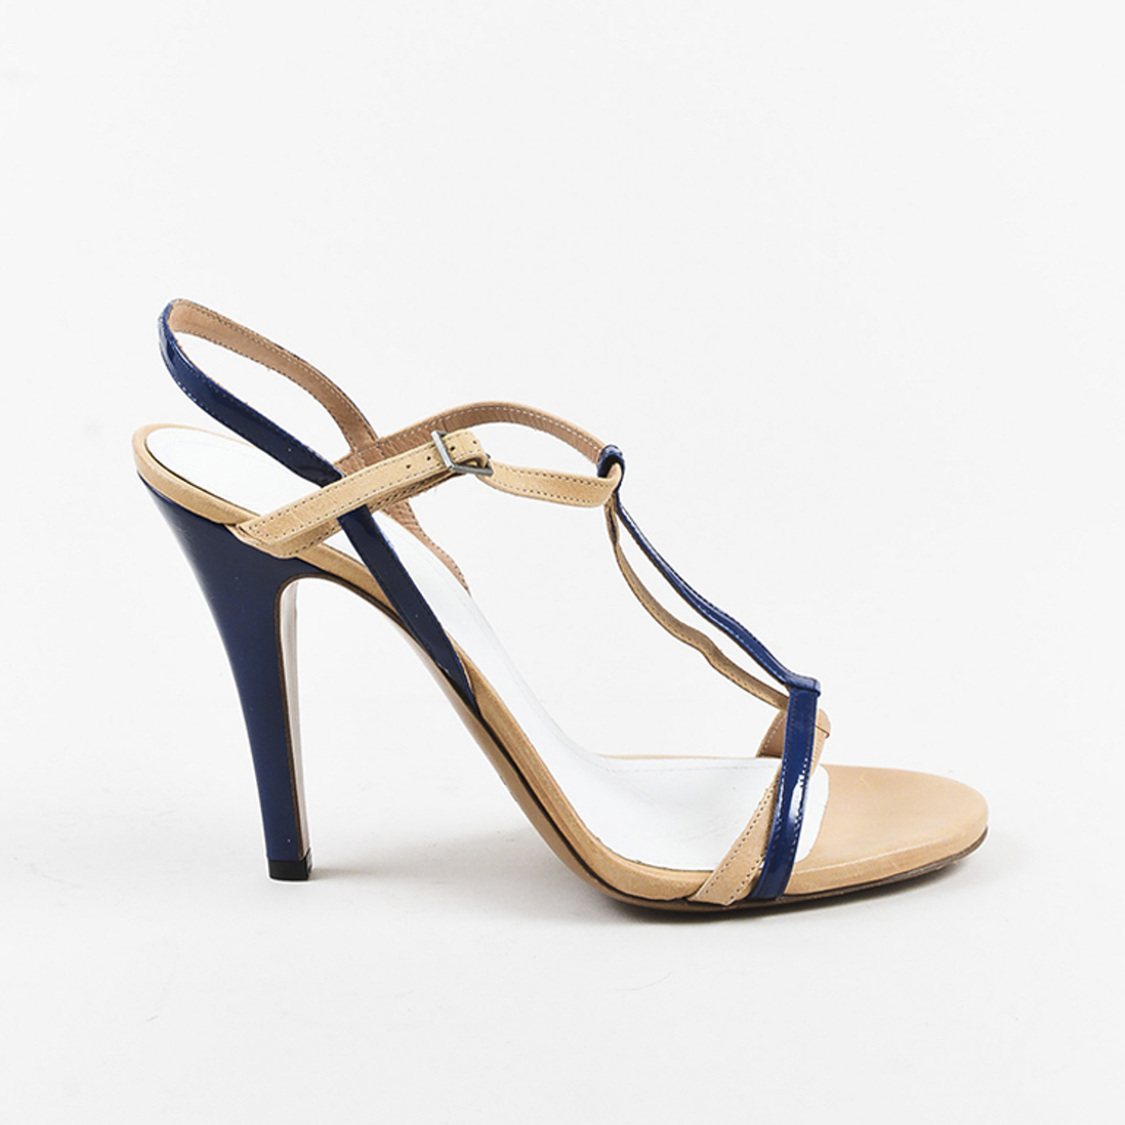 e6b4be05093 Details about Maison Martin Margiela Beige Leather Blue Patent T Strap  Sandals SZ 41